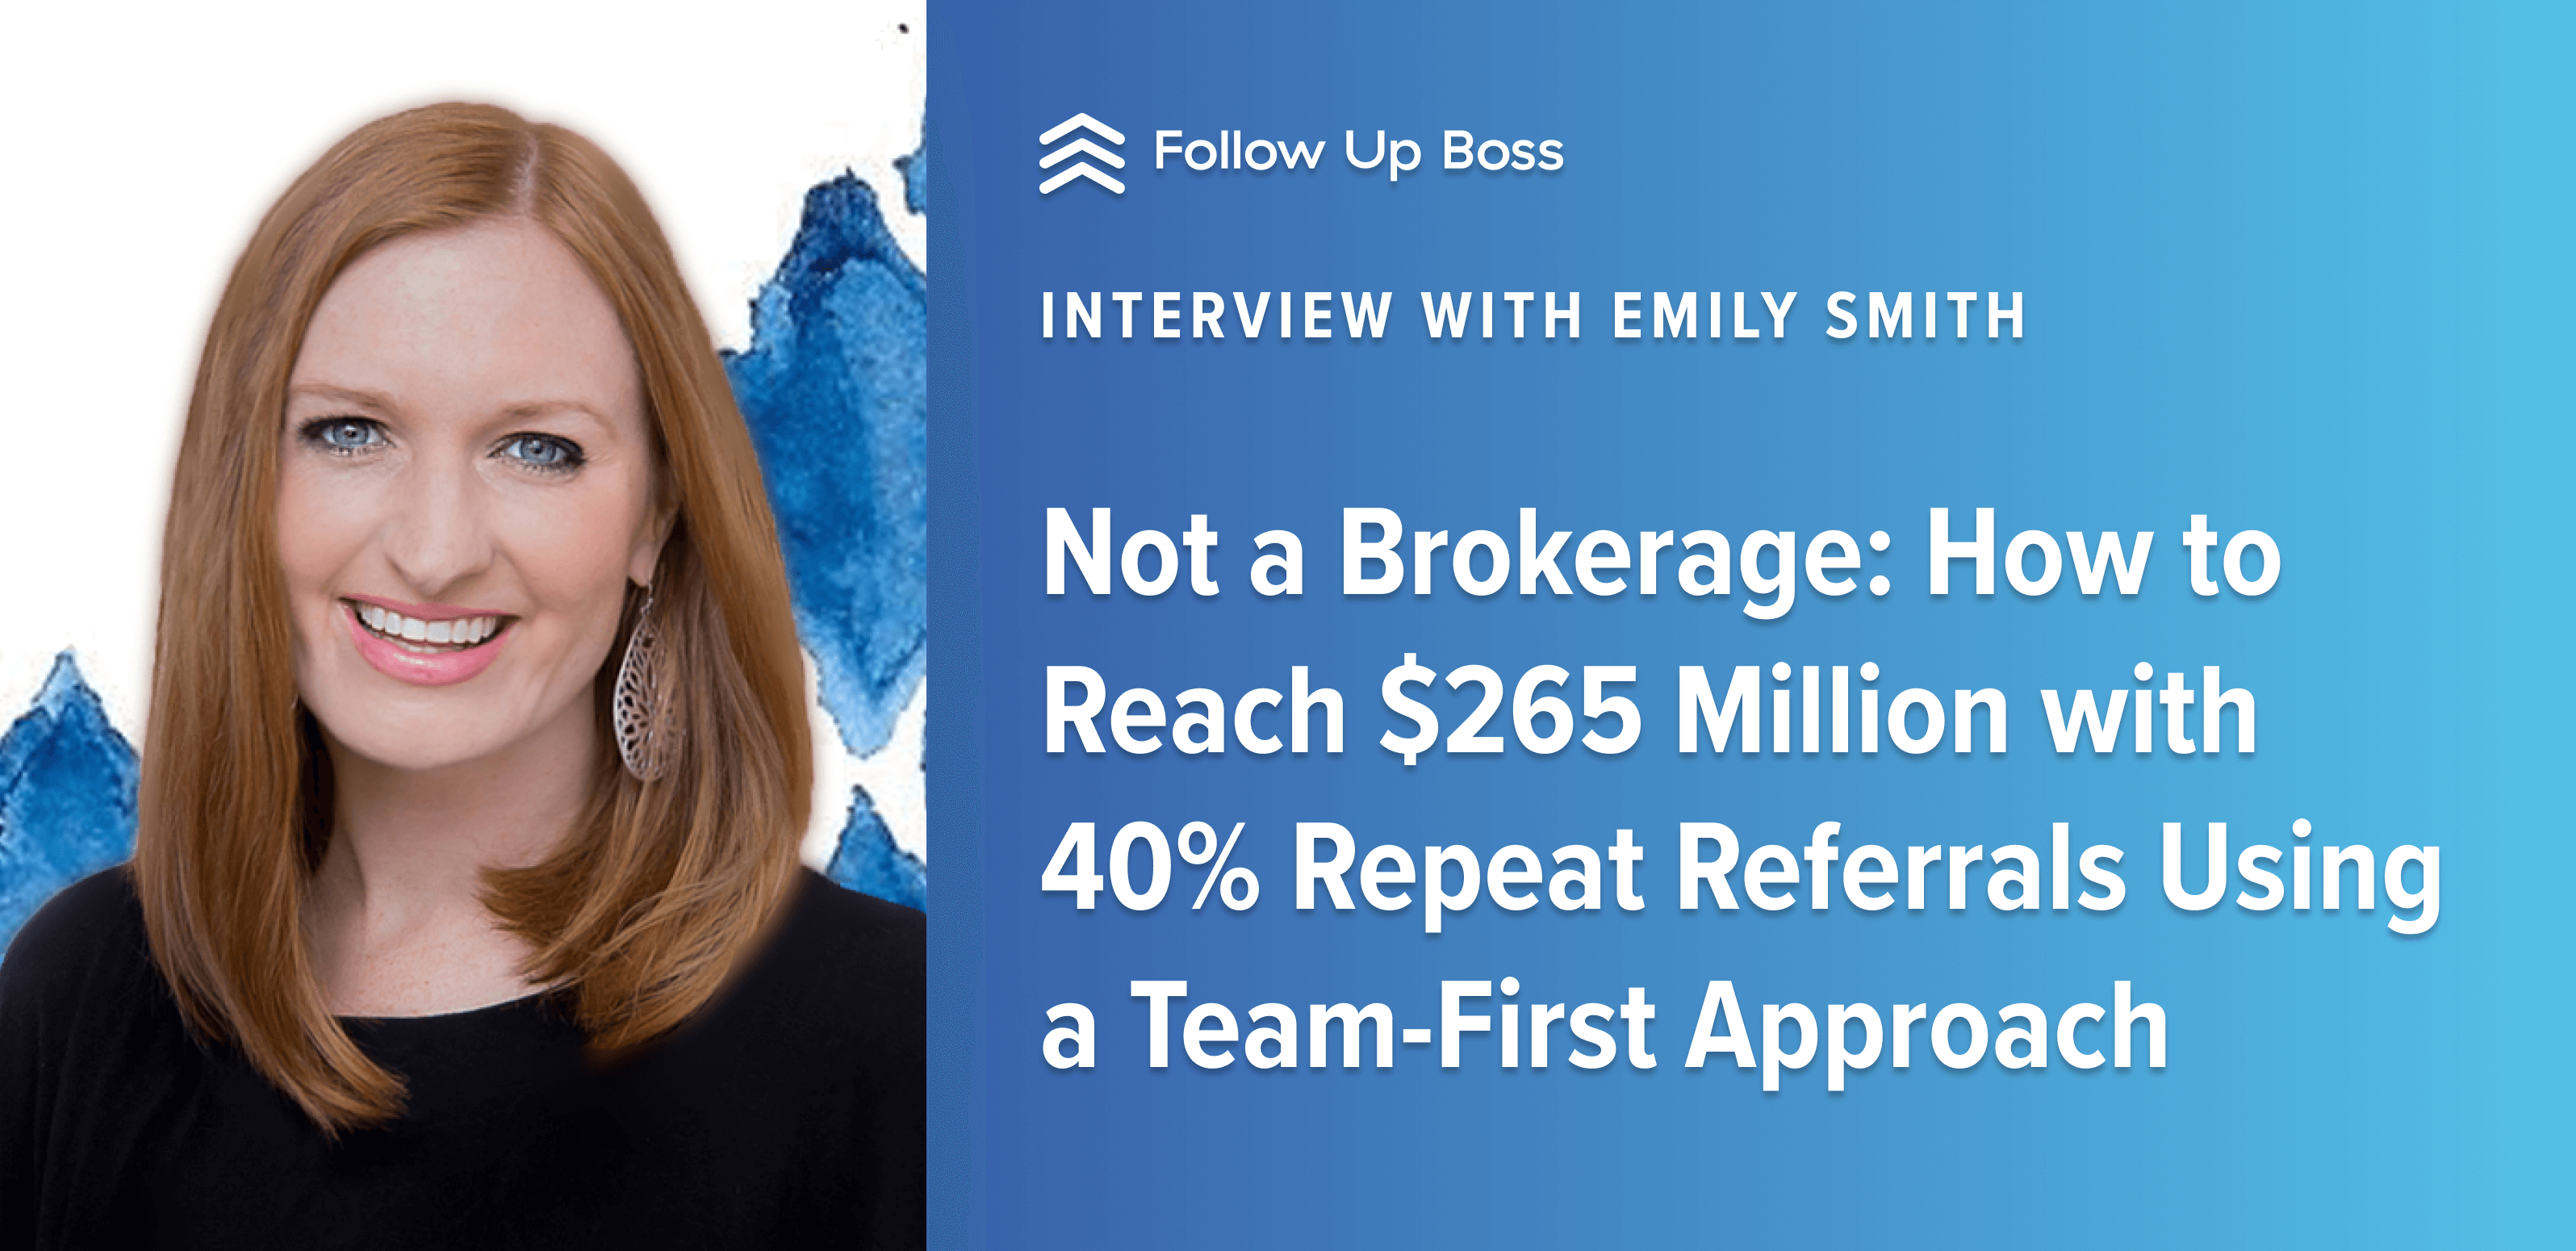 Not a Brokerage: How to Reach $265 Million with 40% Repeat Referrals Using a Team-First Approach